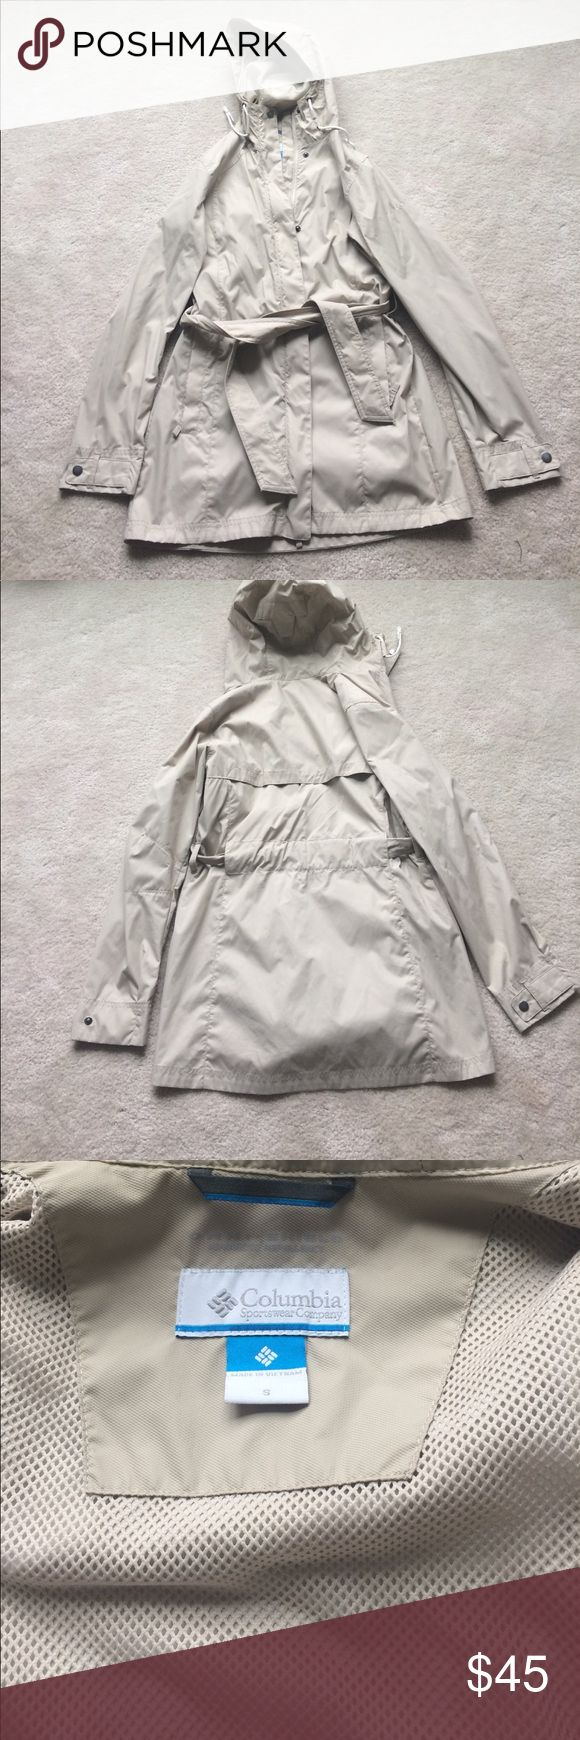 Columbia Raincoat with hood size small Worn a few times but like new! Lightweight and nude in color. No holes or stains. Non smoker owner. Columbia Jackets & Coats